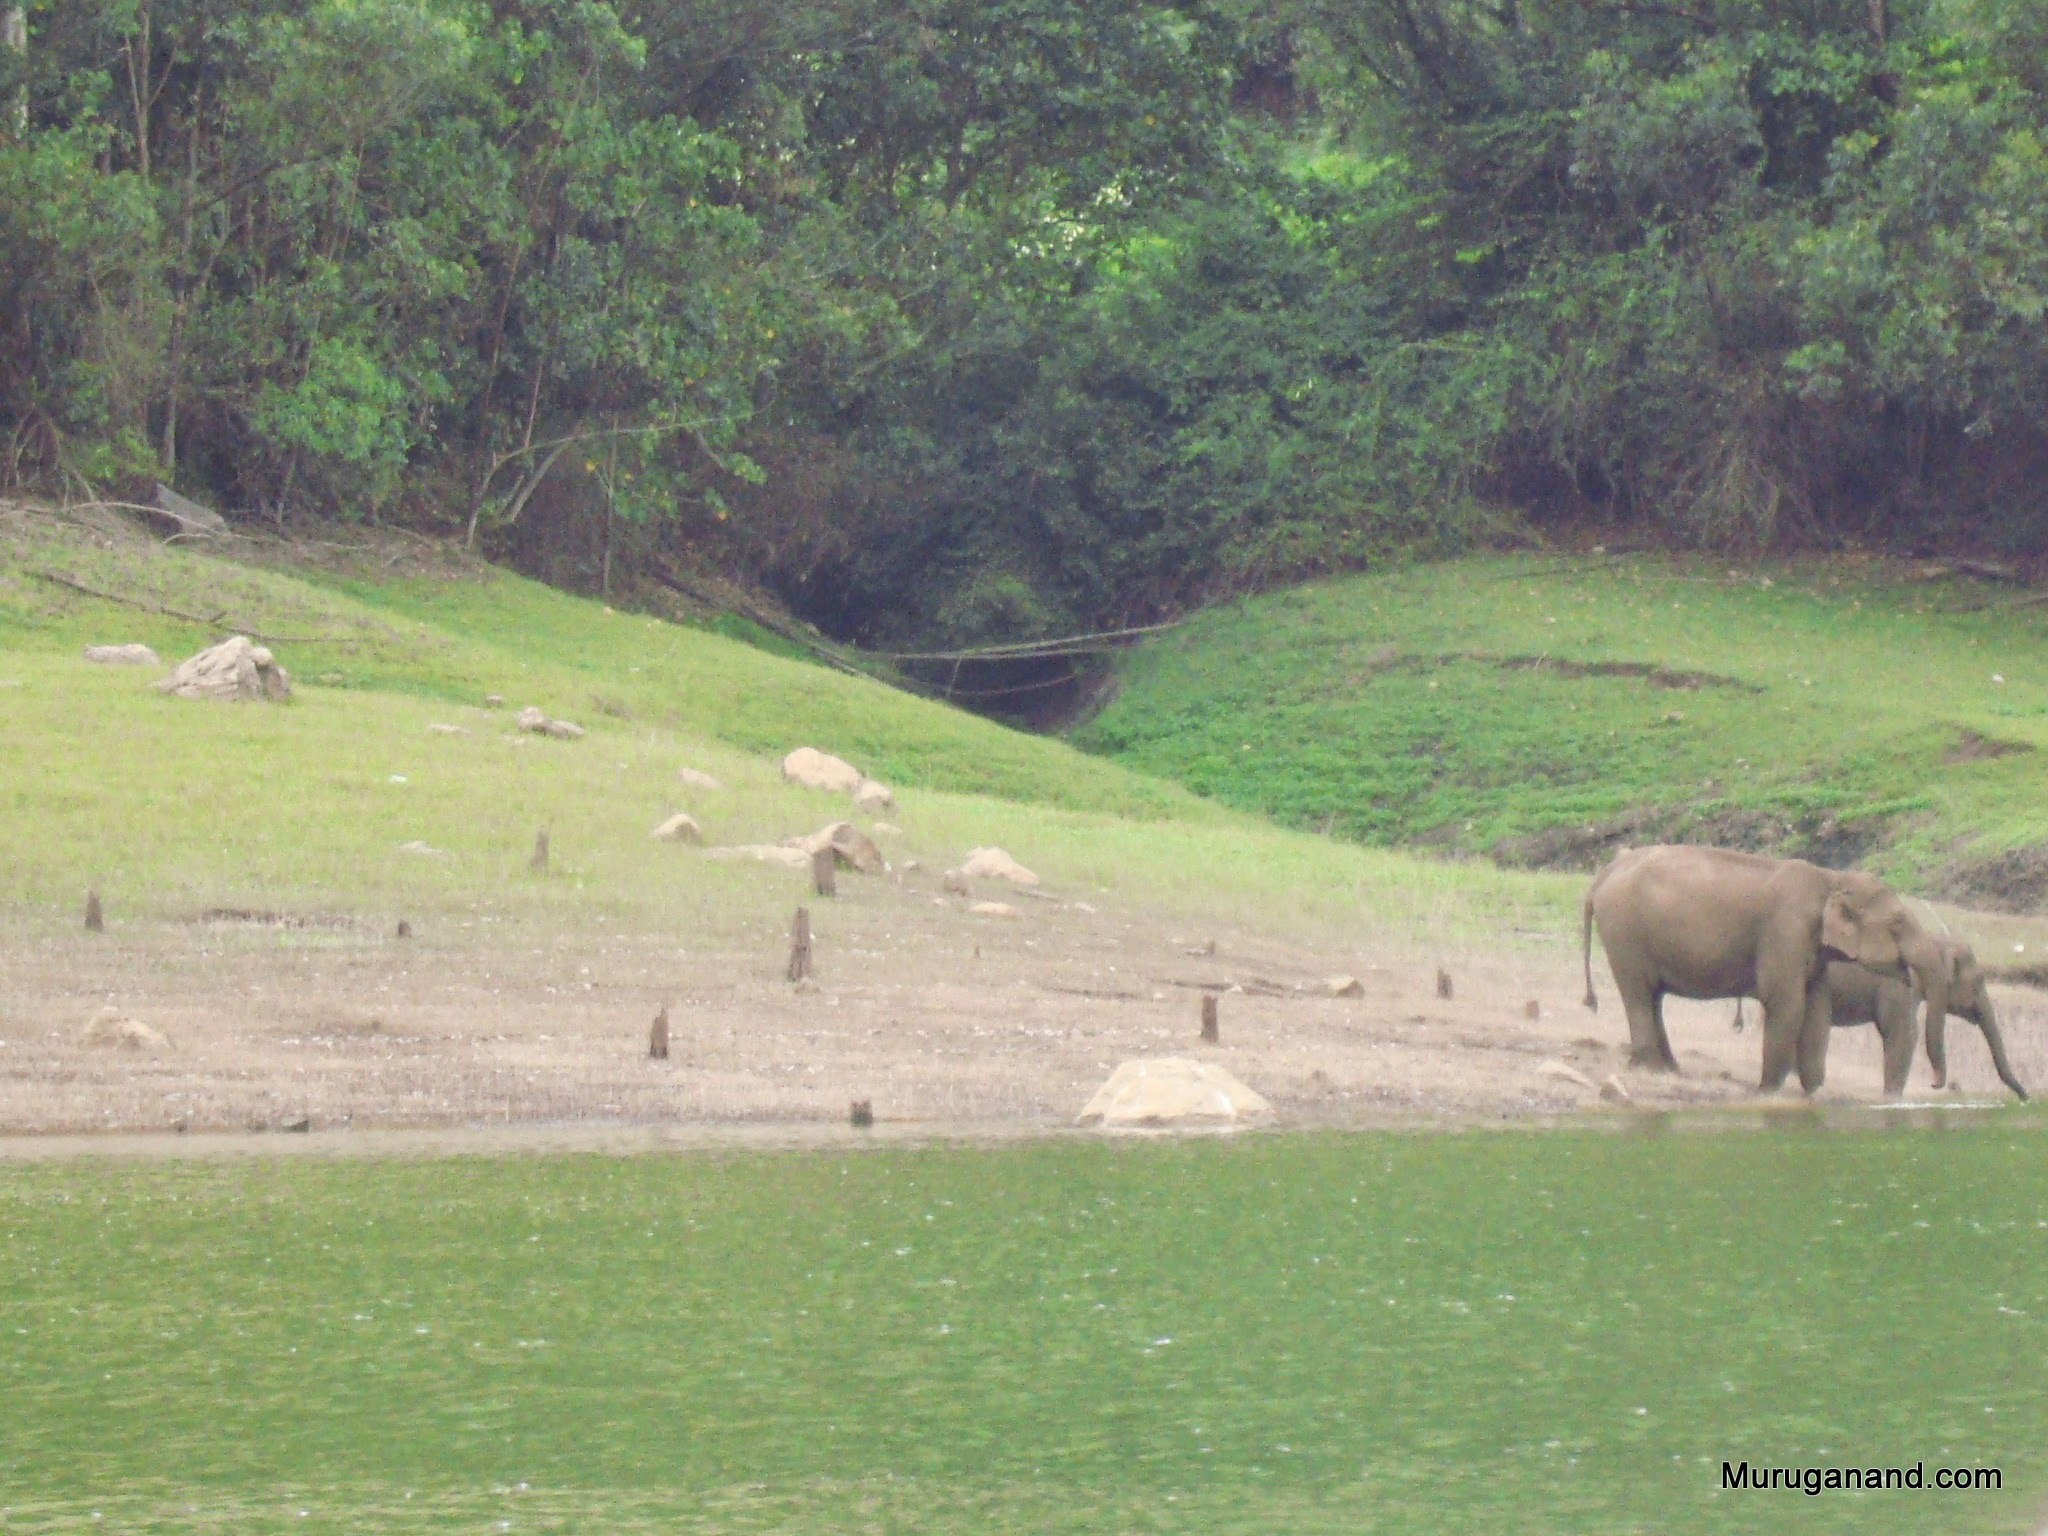 Cited elephants drinking water in the lake